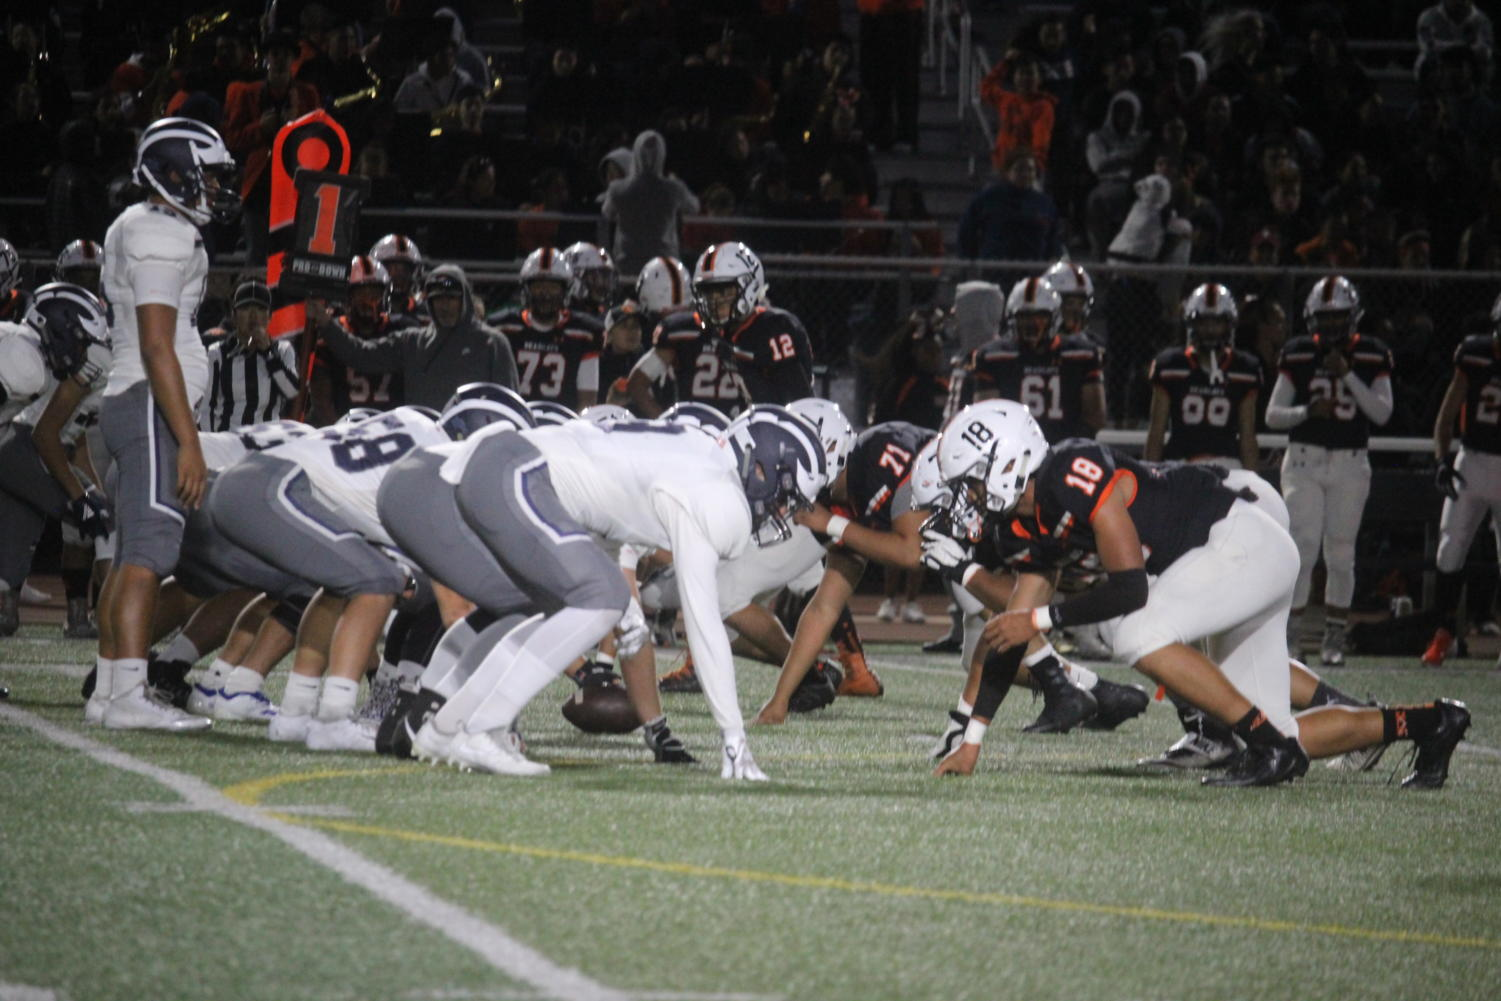 The+Carlmont+Scots+and+San+Mateo+Bearcats+face+each+other+on+Friday%2C+Sept.+15.